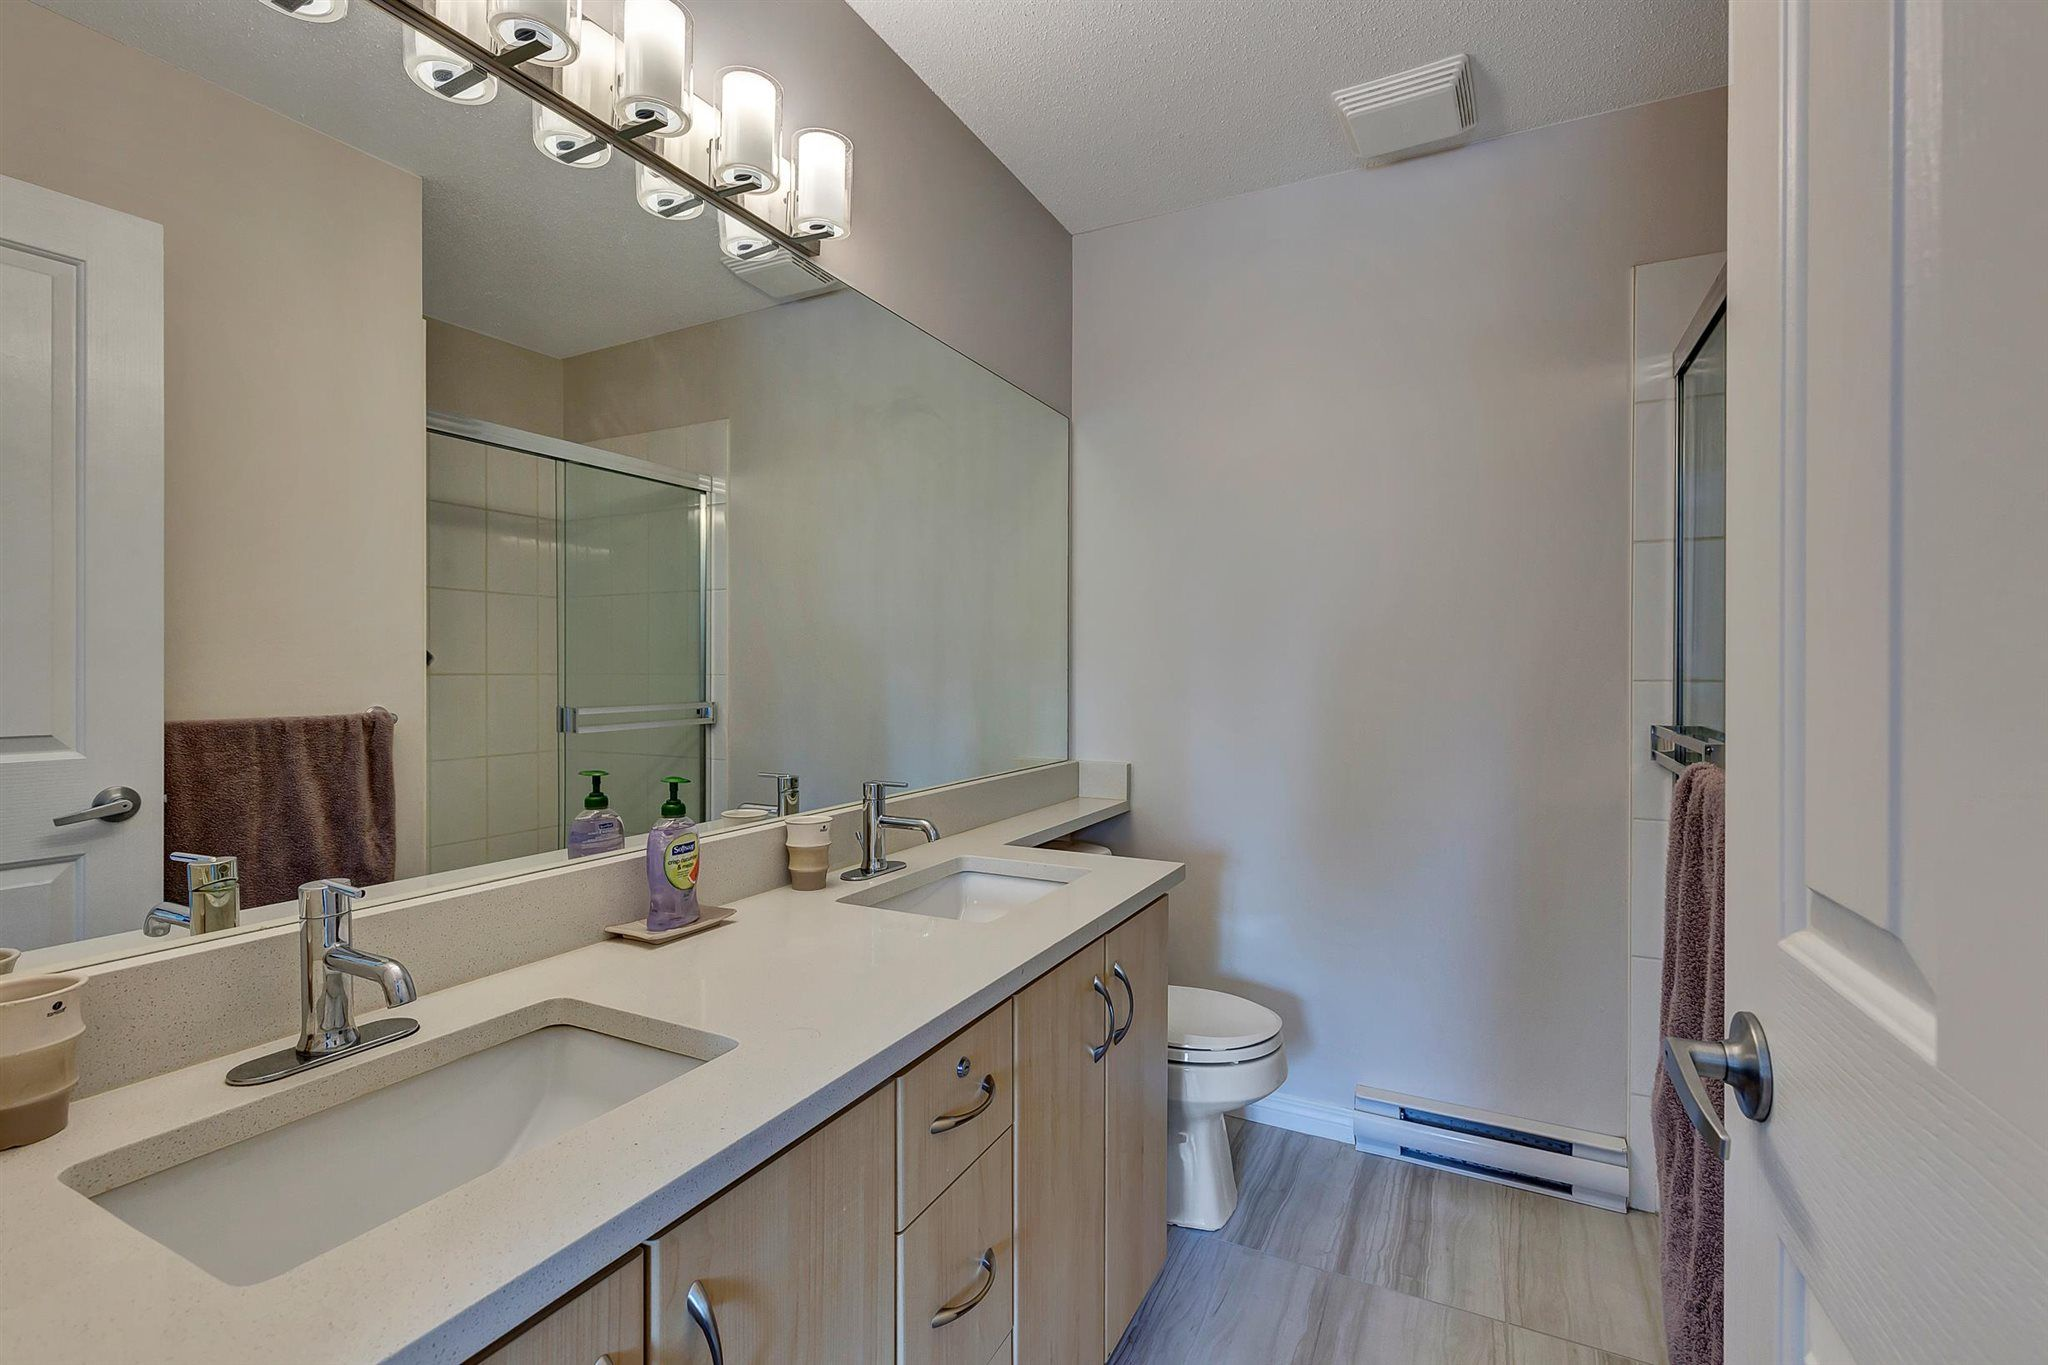 """Photo 21: Photos: 9 15871 85 Avenue in Surrey: Fleetwood Tynehead Townhouse for sale in """"Huckleberry"""" : MLS®# R2606668"""